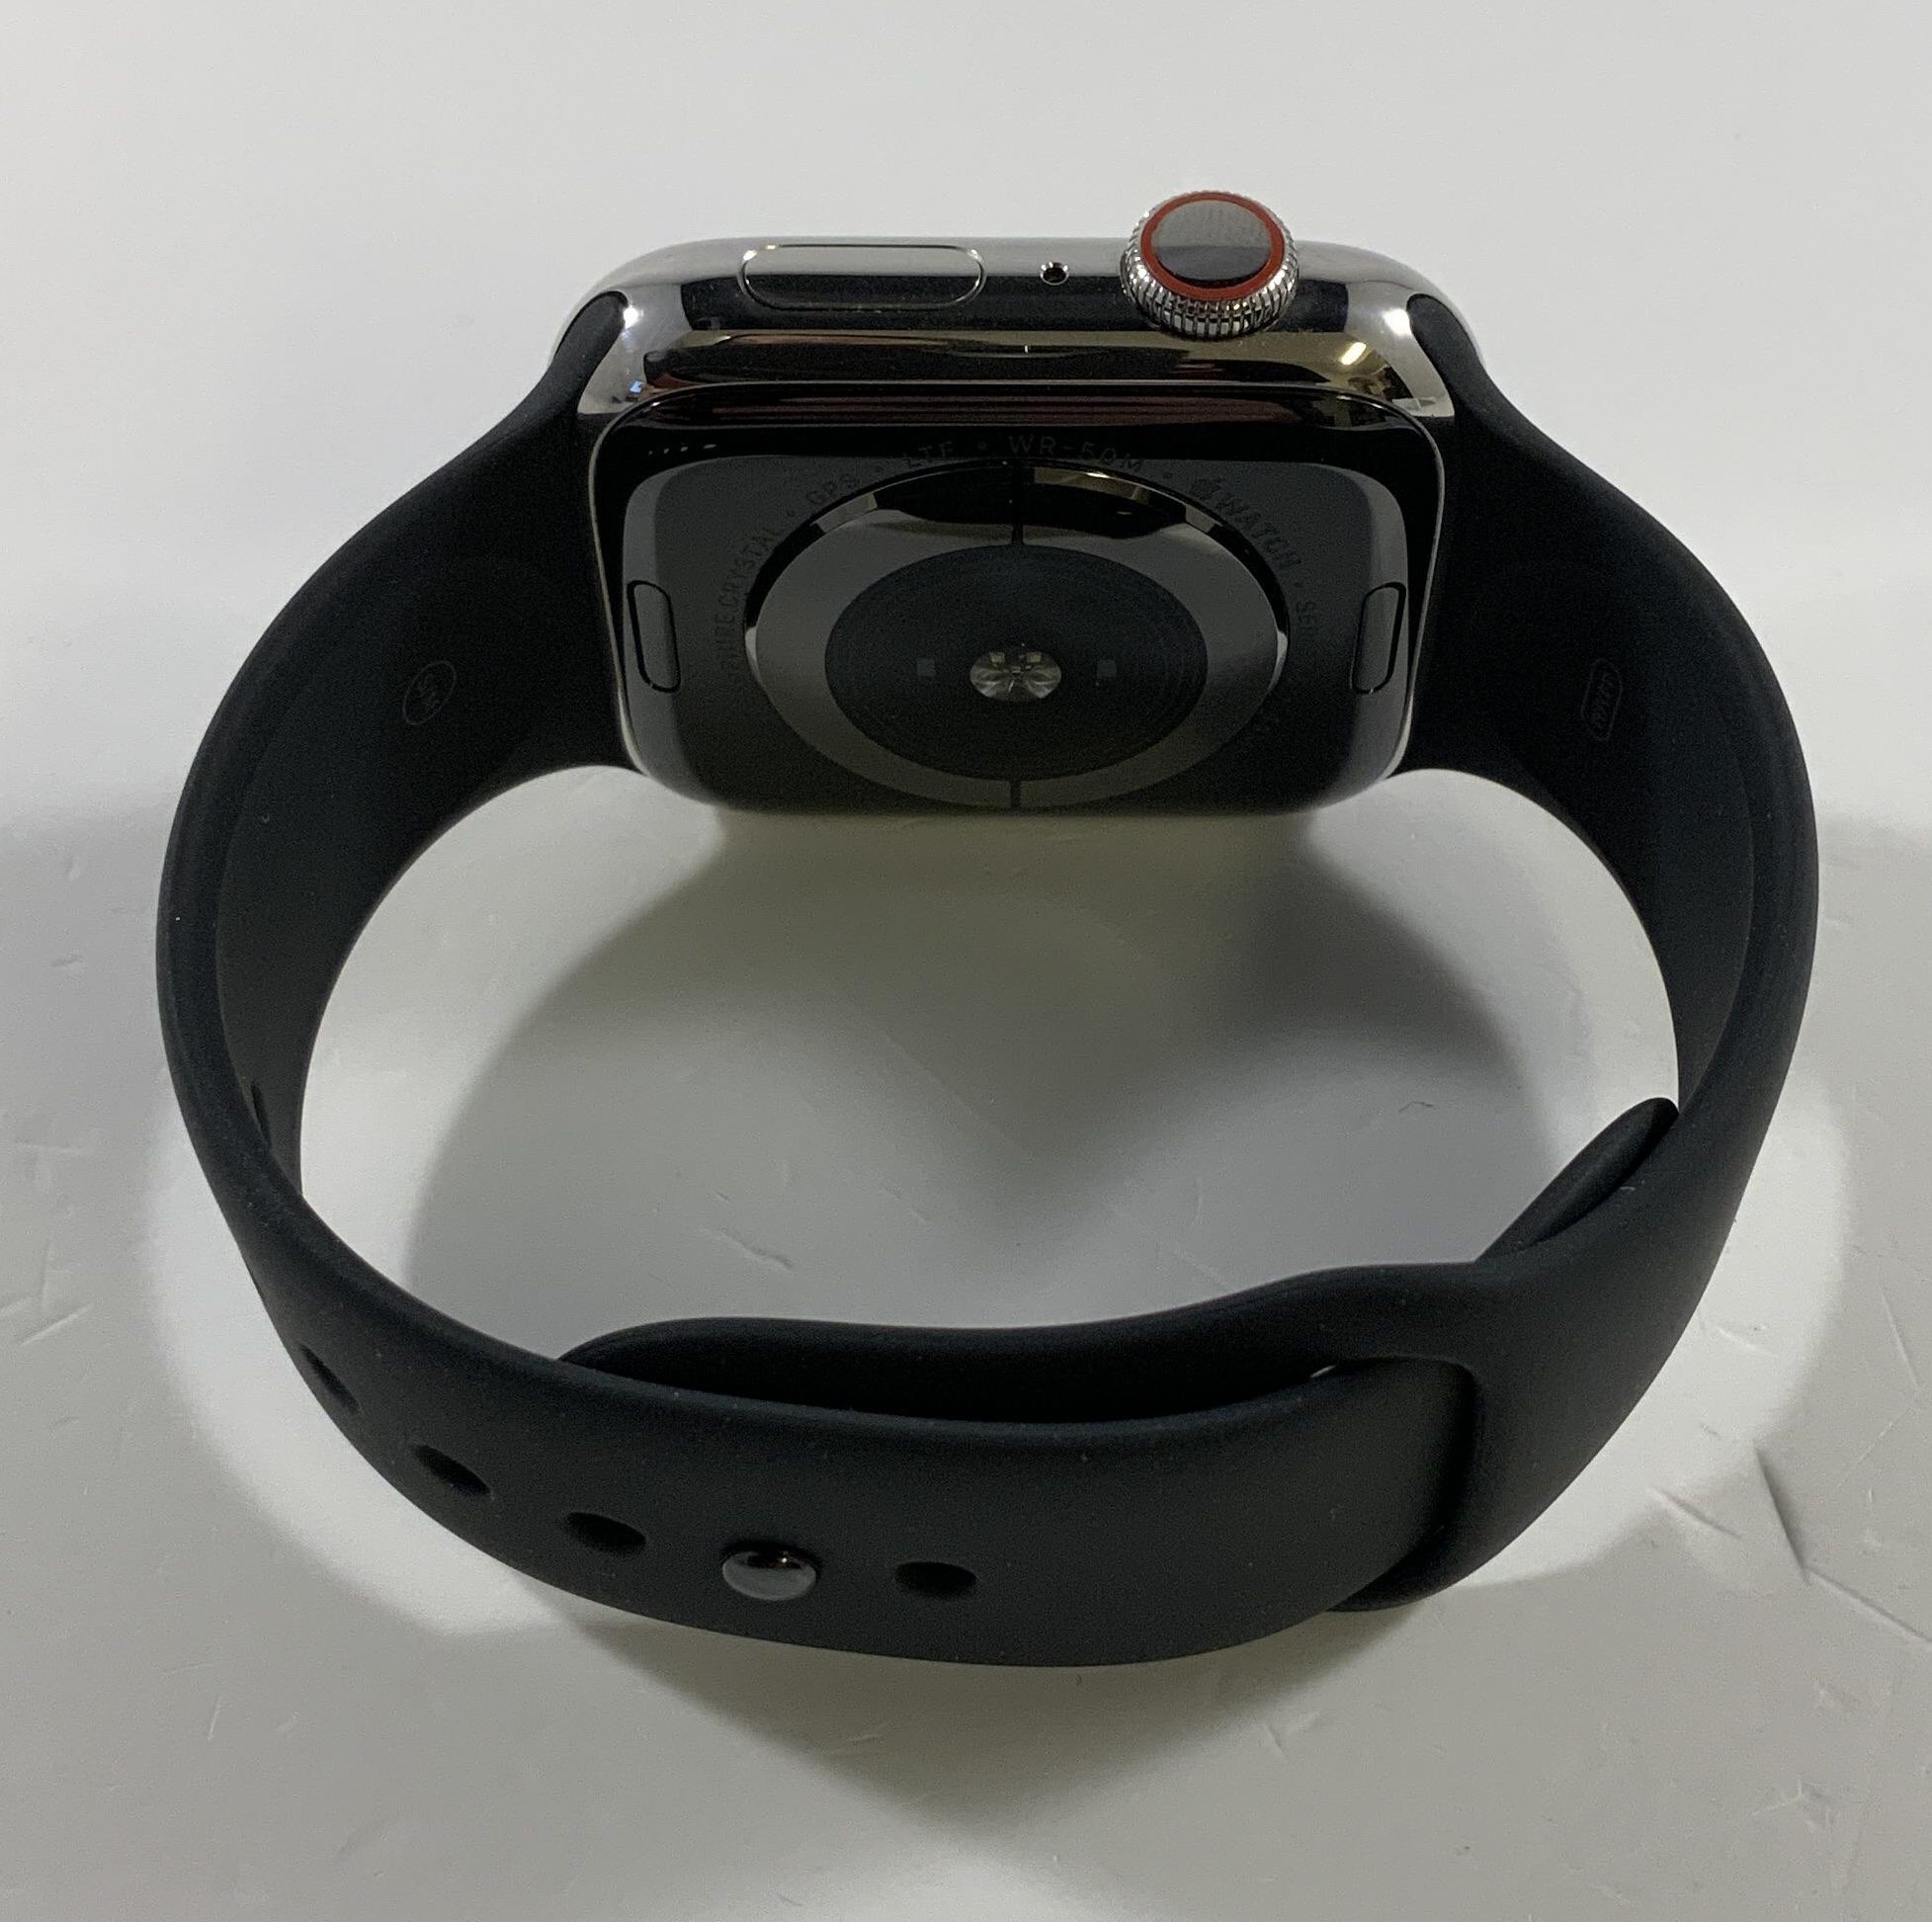 Watch Series 5 Steel Cellular (44mm), Space Black, Bild 2